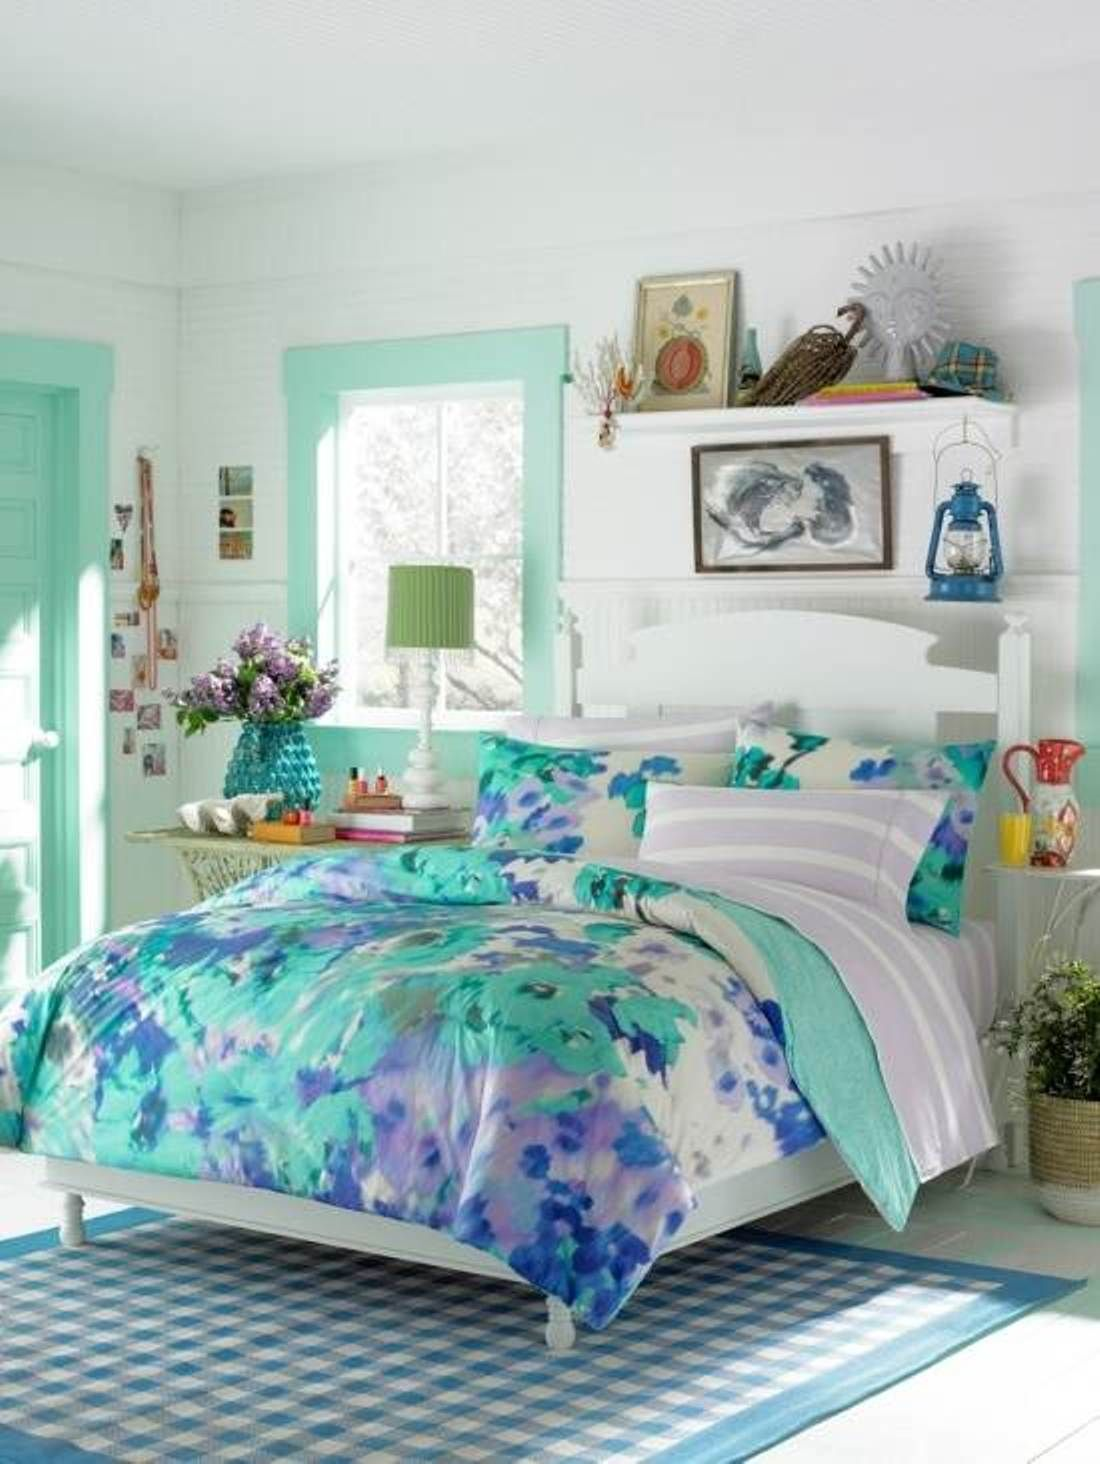 Discover The Huge Collection Of The Most Beautiful Bedroom Designs Ideas  For Teenage Girls With Beautiful Design And Colourful.